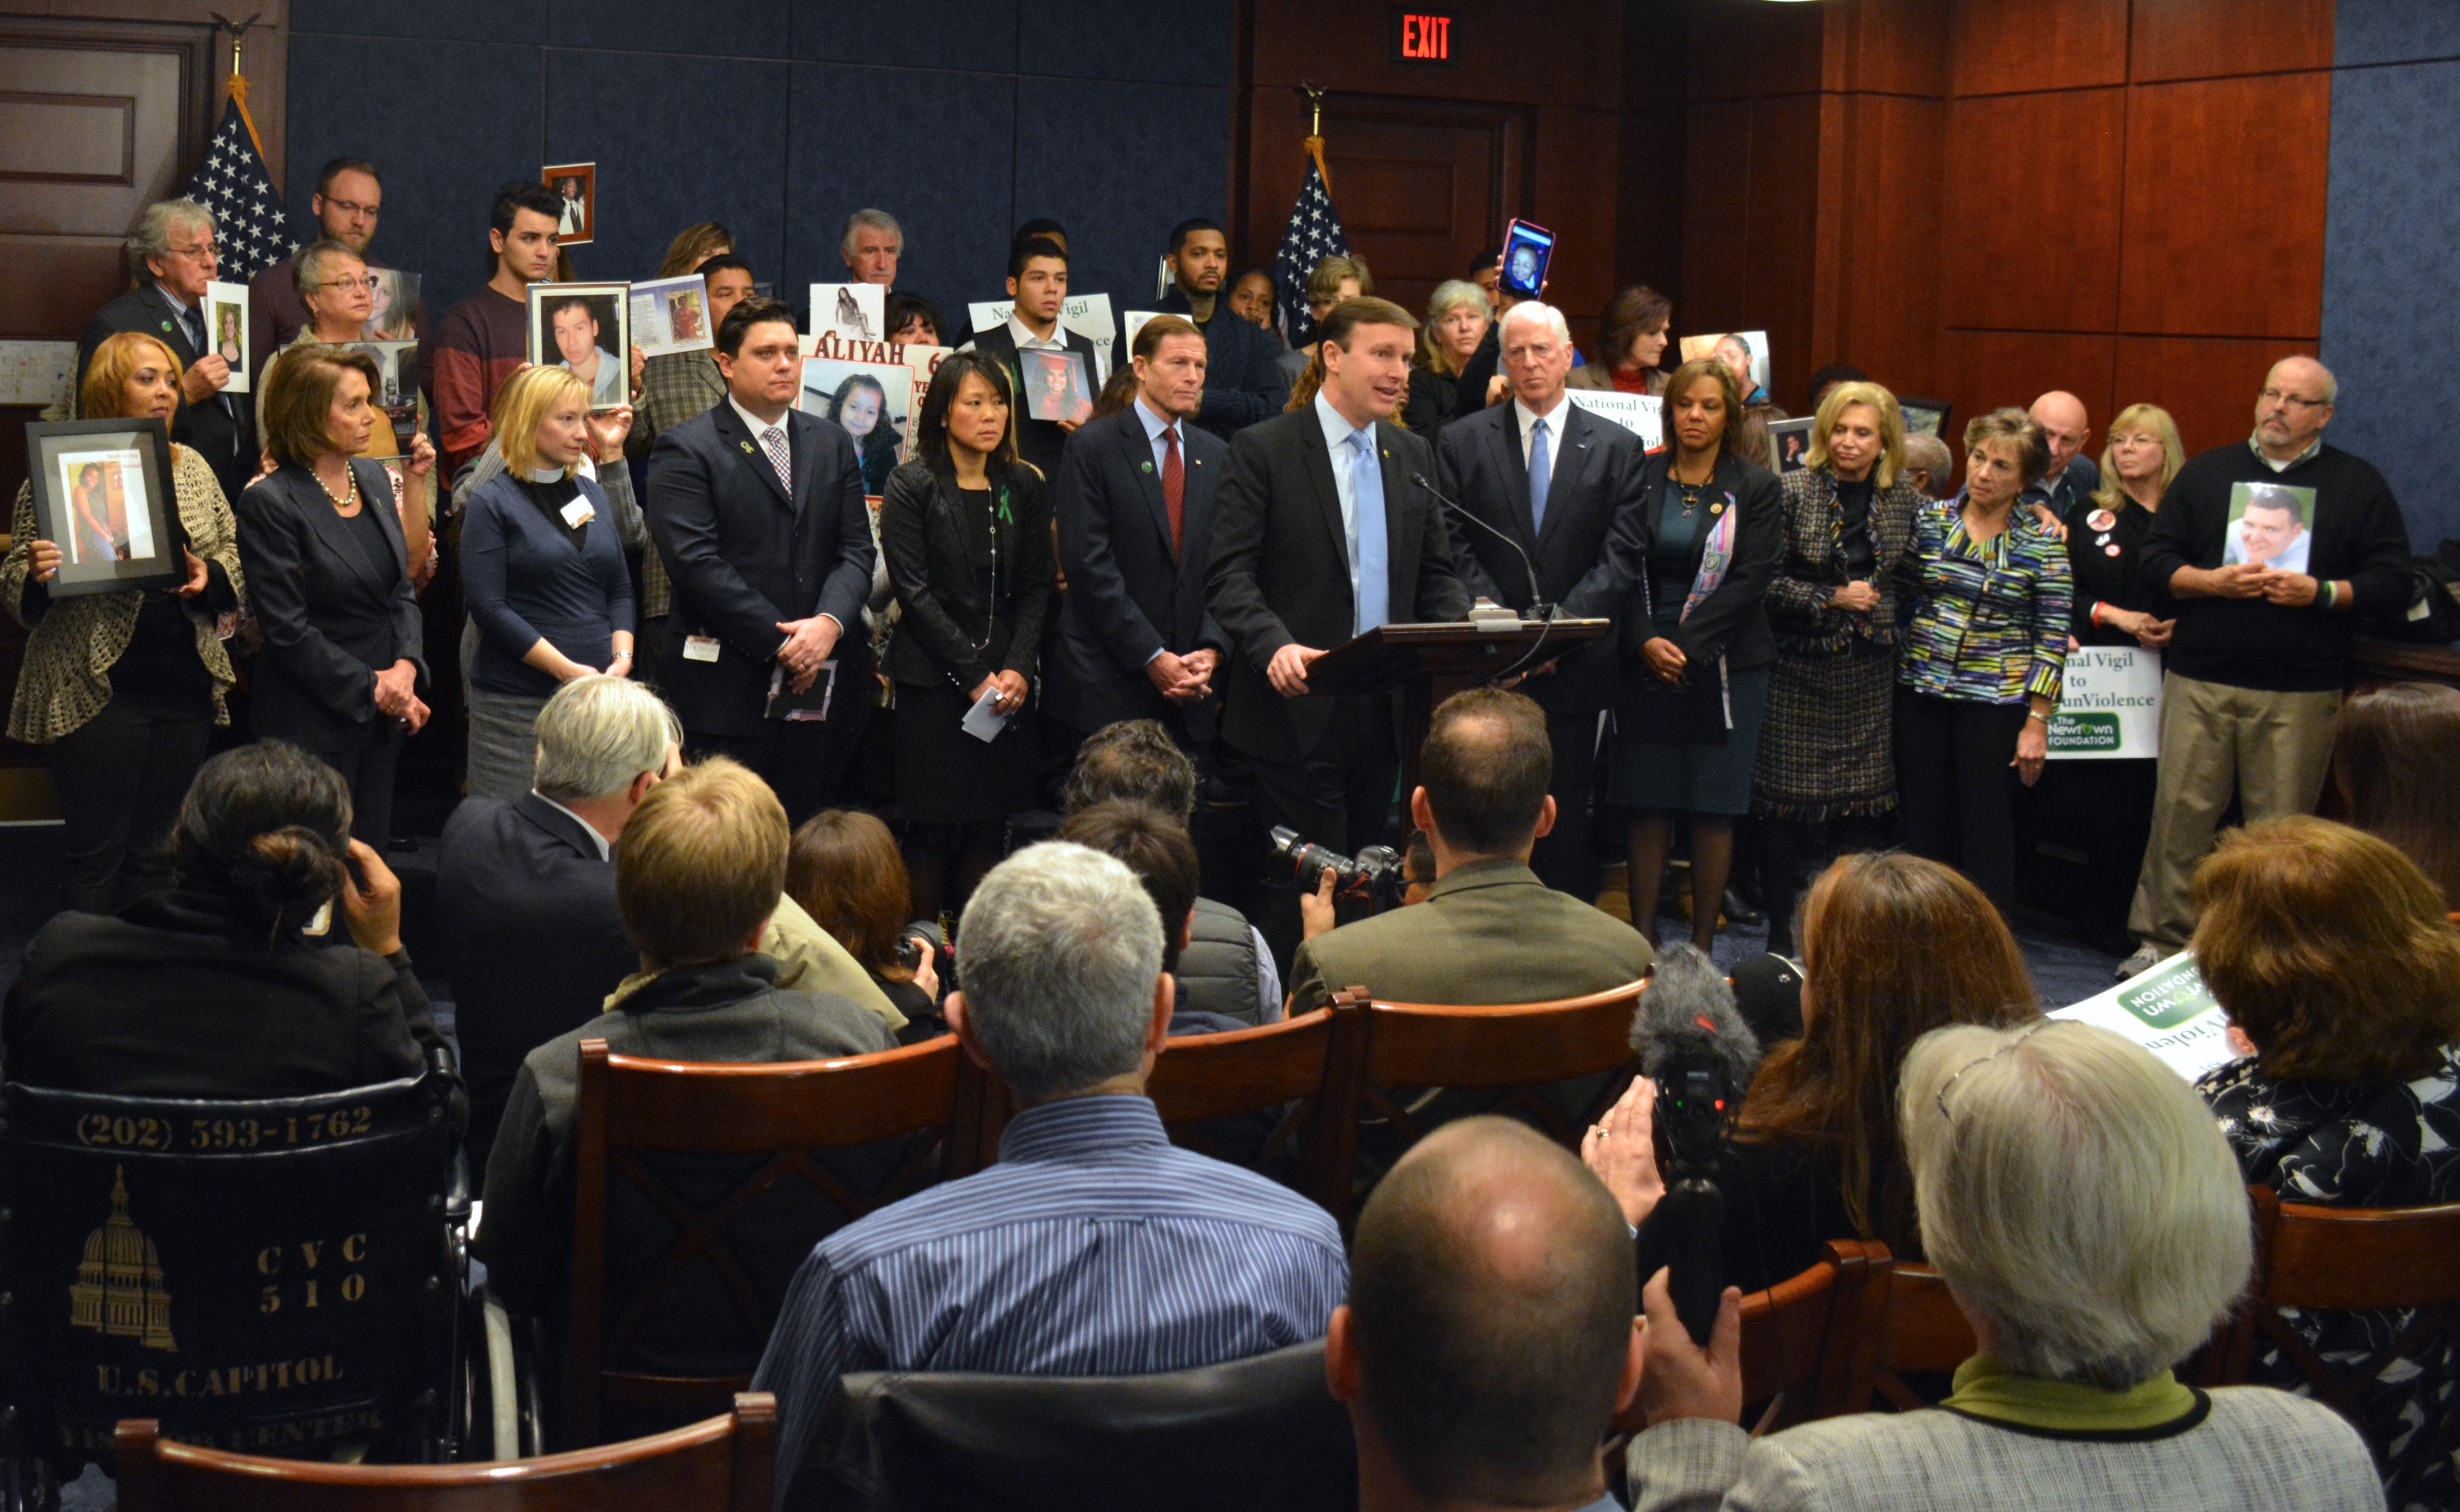 U.S. Sens. Richard Blumenthal and Chris Murphy, at podium, House Minority Leader Nancy Pelosi, standing far left, other congressional Democrats and family members of victims of gun violence